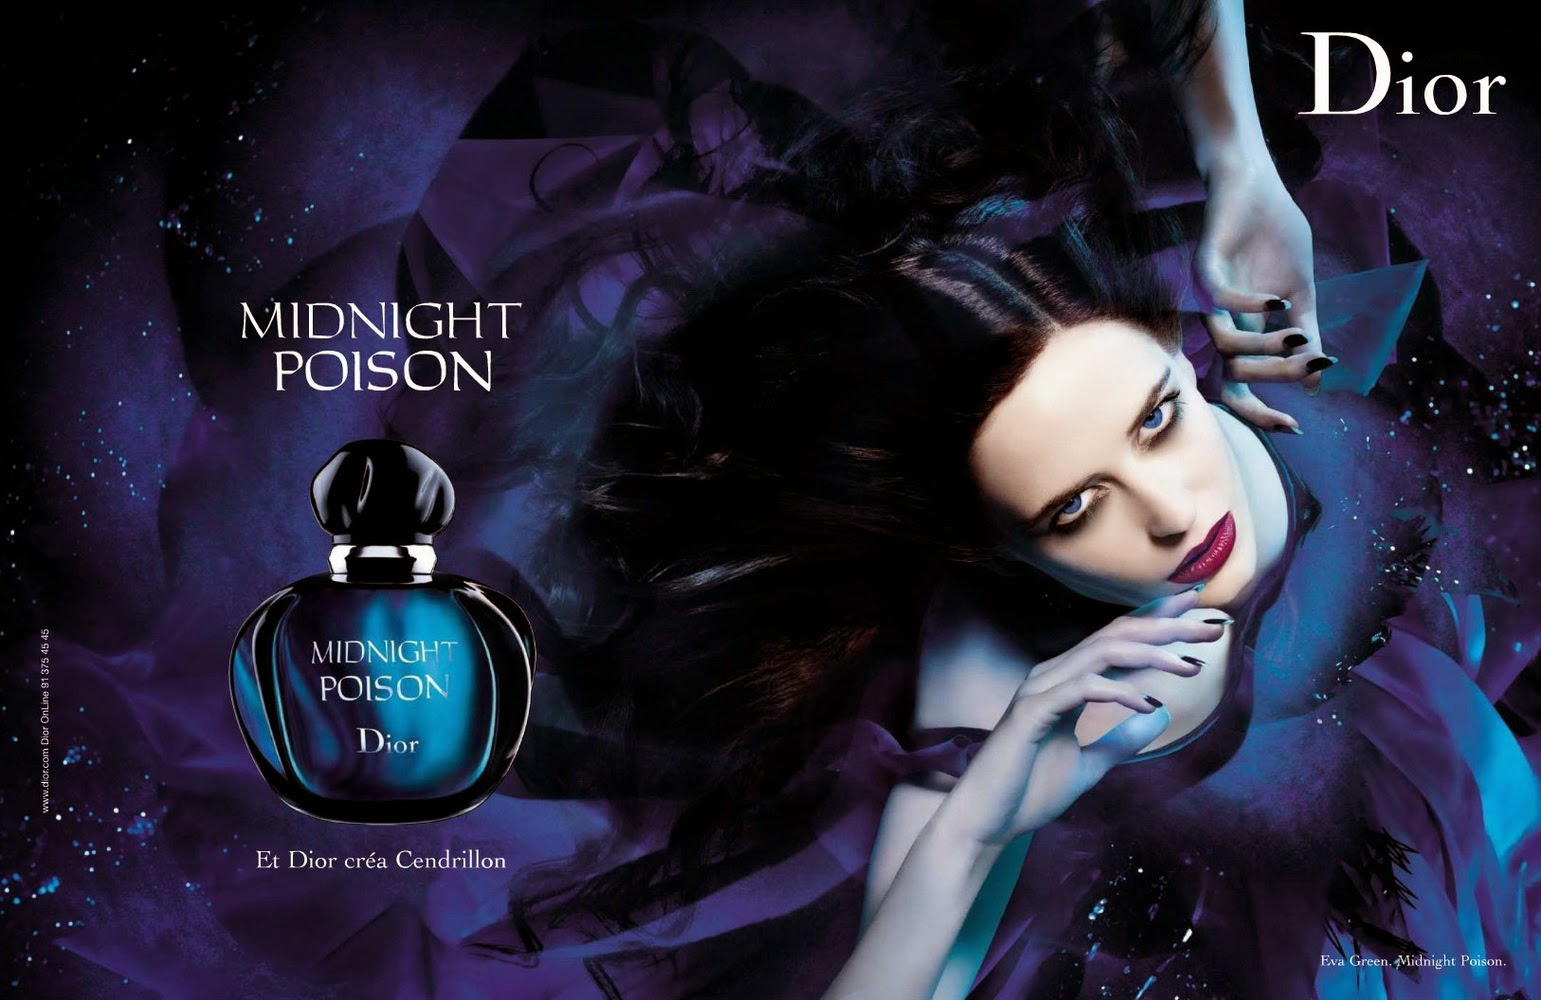 MIDNIGHT POISON COMERCIAL